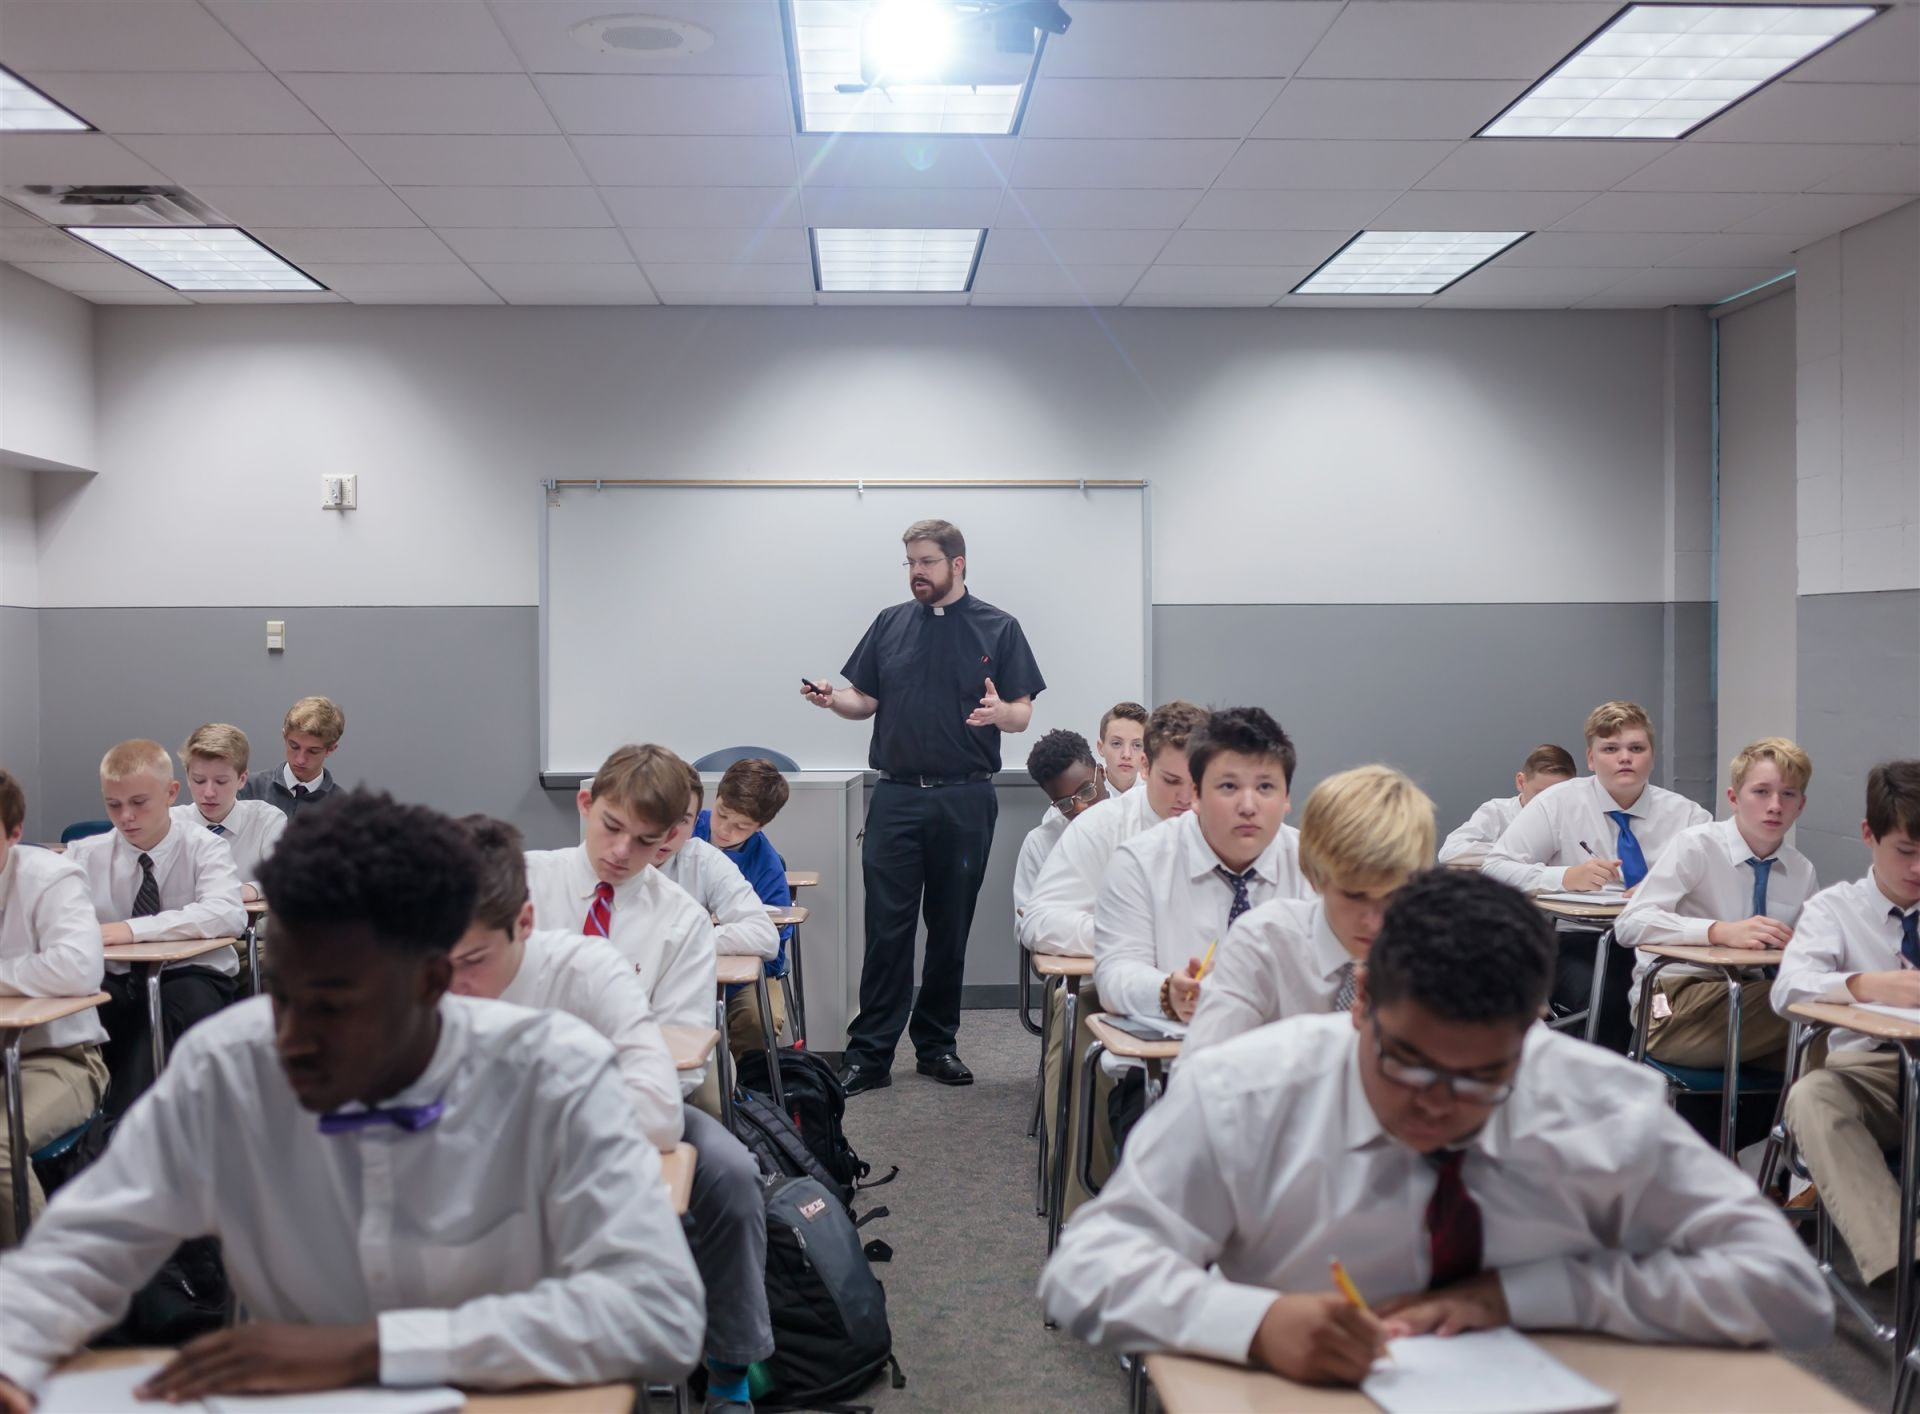 Students in class at Rockhurst High School in Kansas City